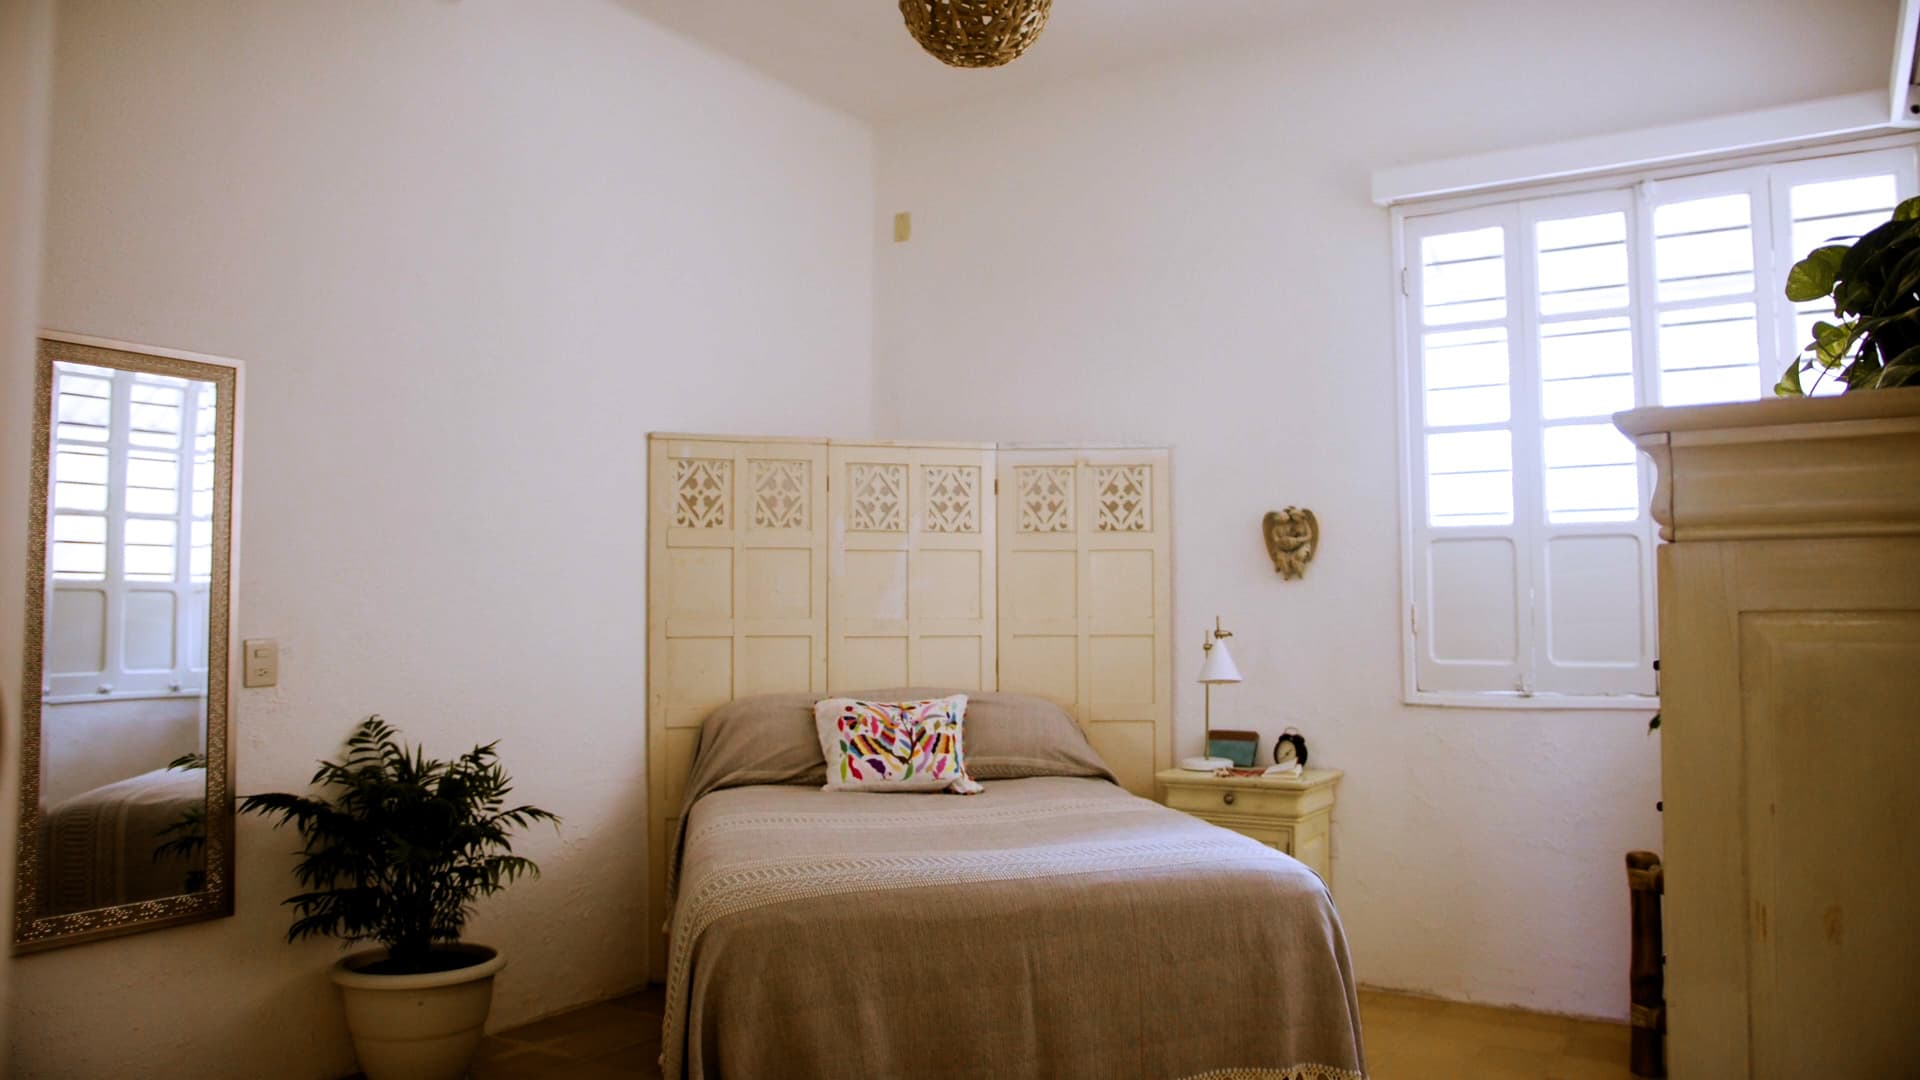 My bedroom is a cozy, peaceful oasis in the back corner of the apartment. The headboard is made from 100-year-old shutters from one of the oldest hotels in Mazatlán.